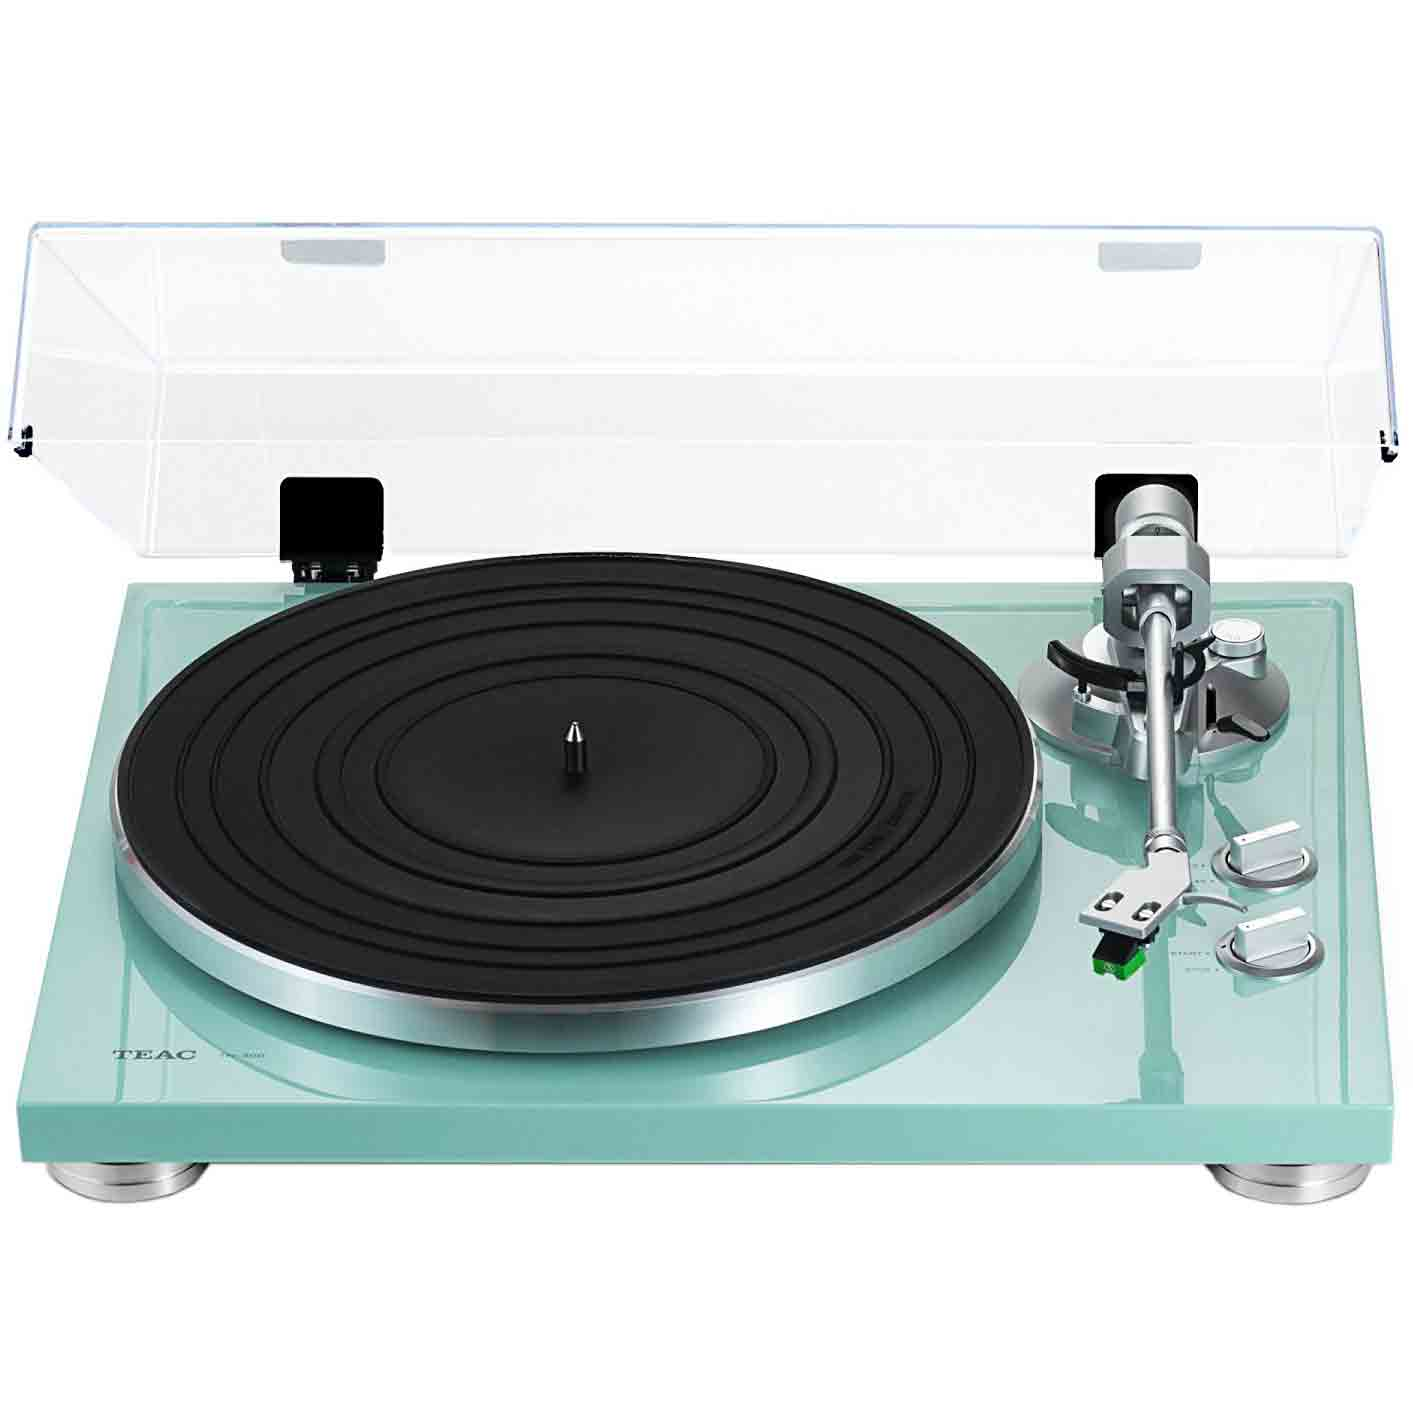 Teac TN-300 2-Speed Analog Turntable Turquoise by TEAC